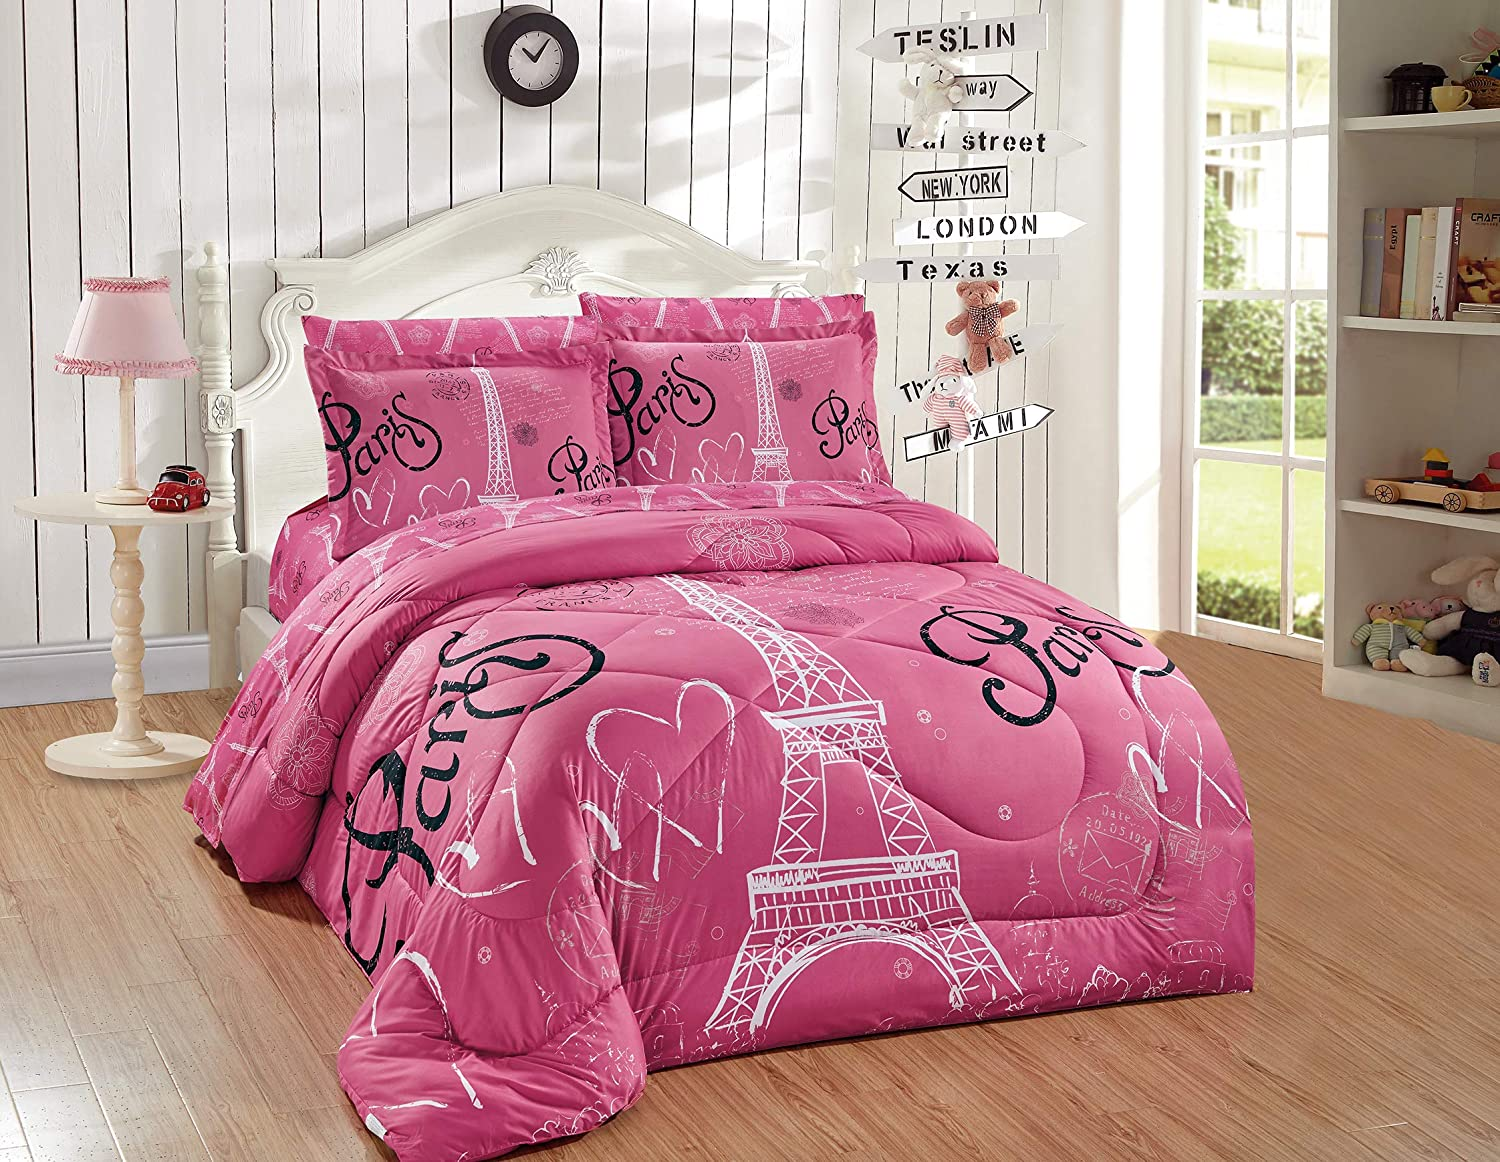 Better Home Style Pink White Black Paris Eiffel Tower Bonjour Design 5 Piece Comforter Bedding Set Bed in a Bag with Complete Sheet Set # FS Paris Pink (Twin)